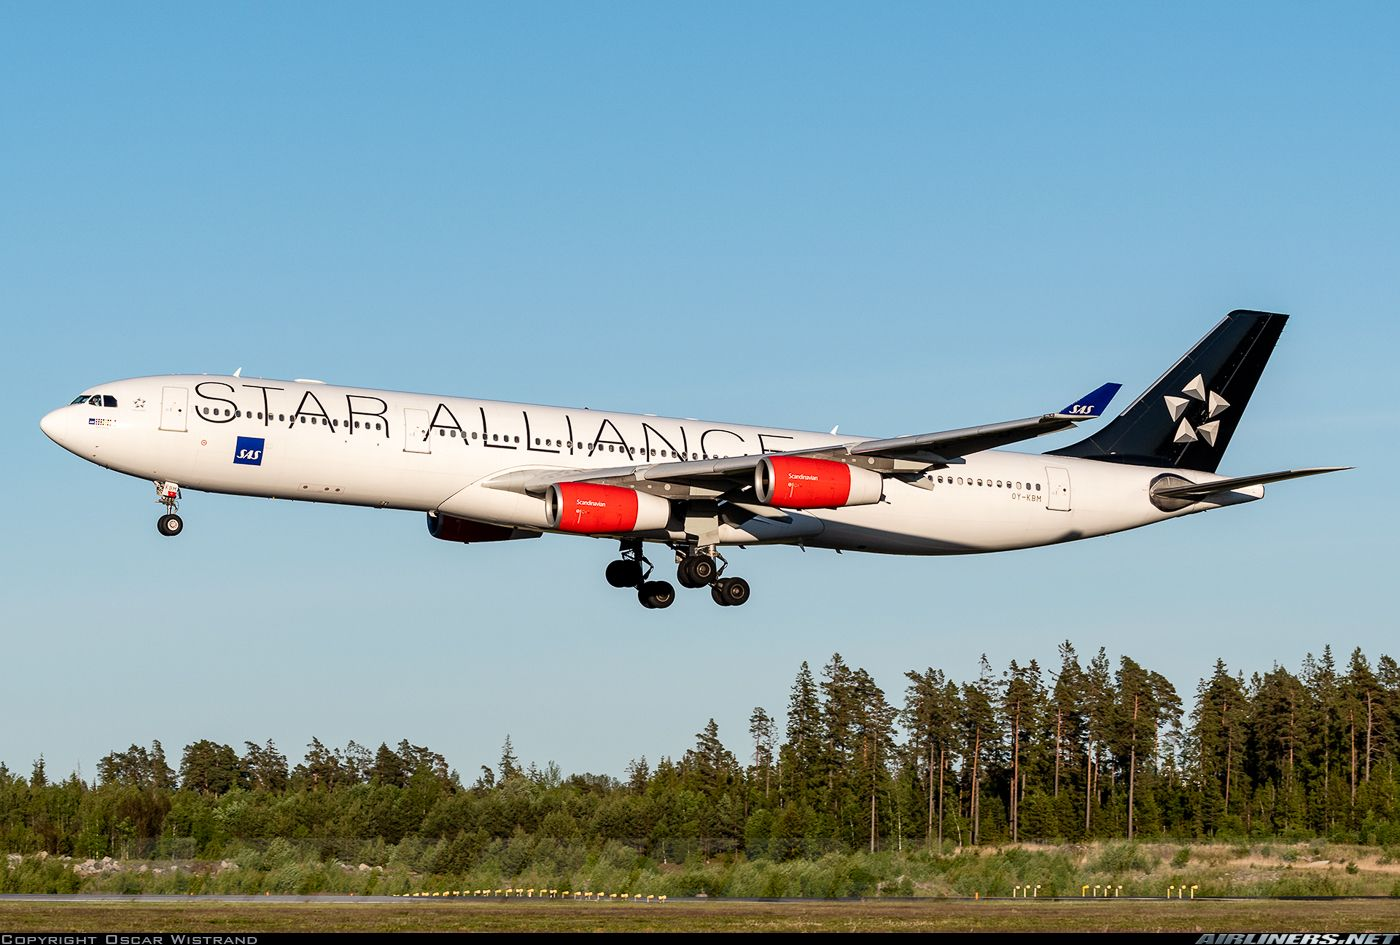 Photo Taken At Stockholm Arlanda Arn Essa In Sweden On May 30 2020 In 2020 Airbus Aviation Scandinavian